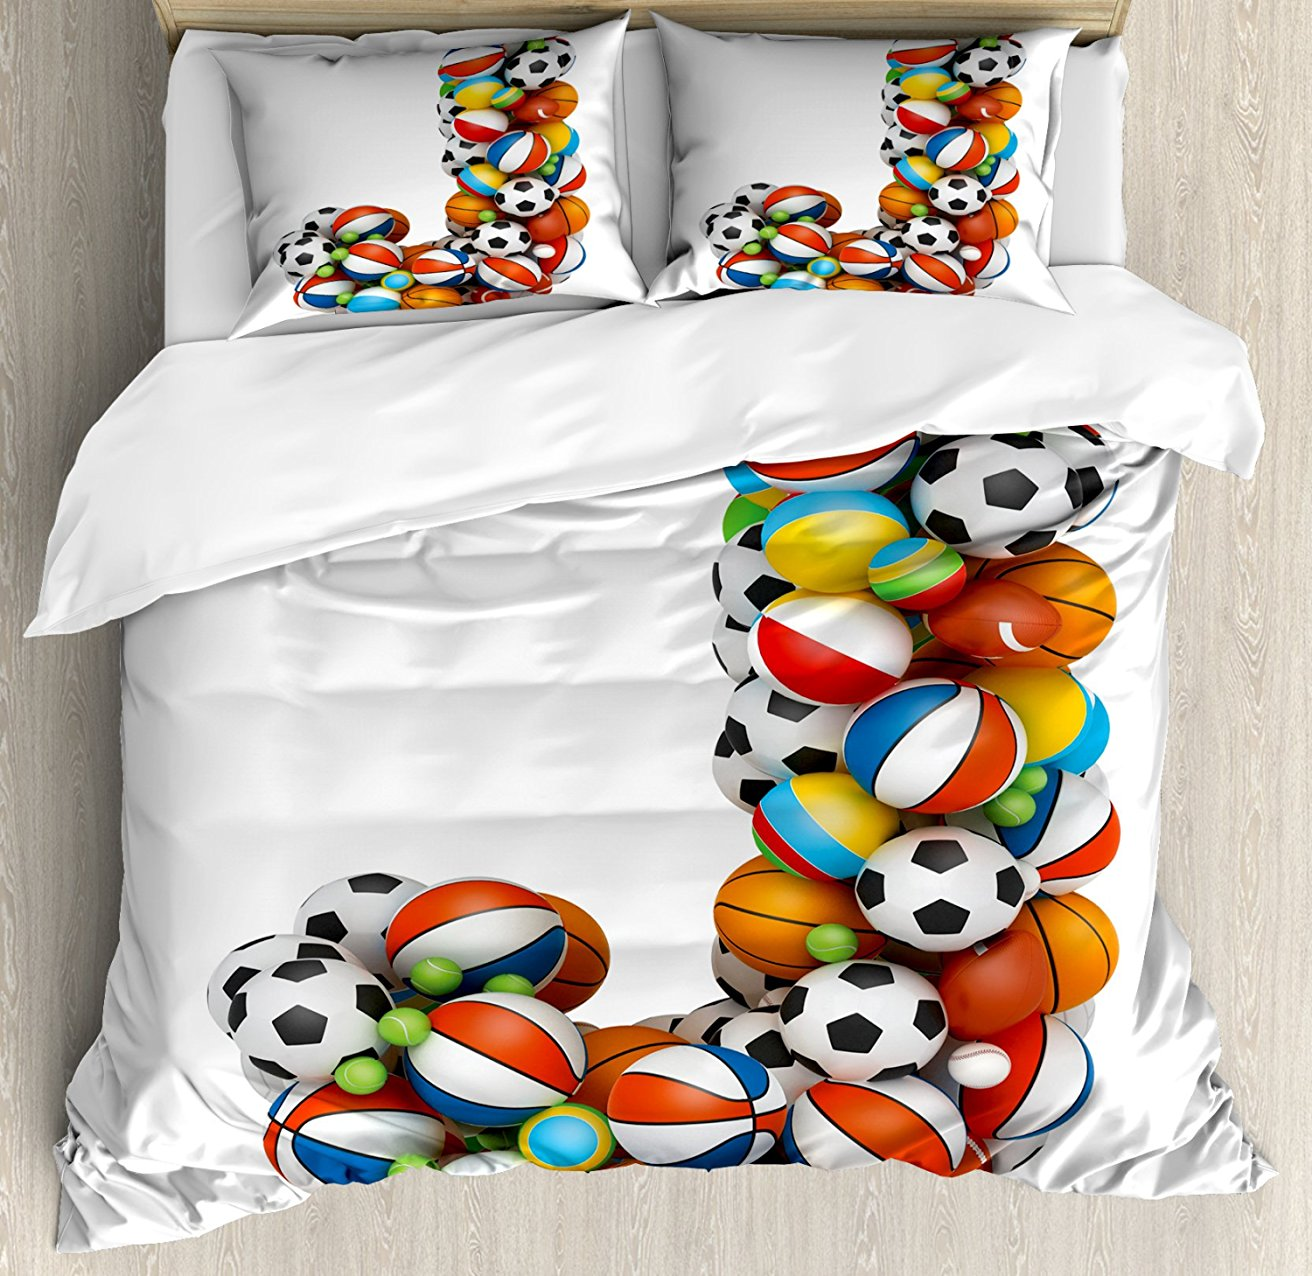 Duvet Cover Set Letter J Capitalized Sporting Goods Basketball Football Pigskin Fun Games Design Decorative 4 Piece Bedding Set